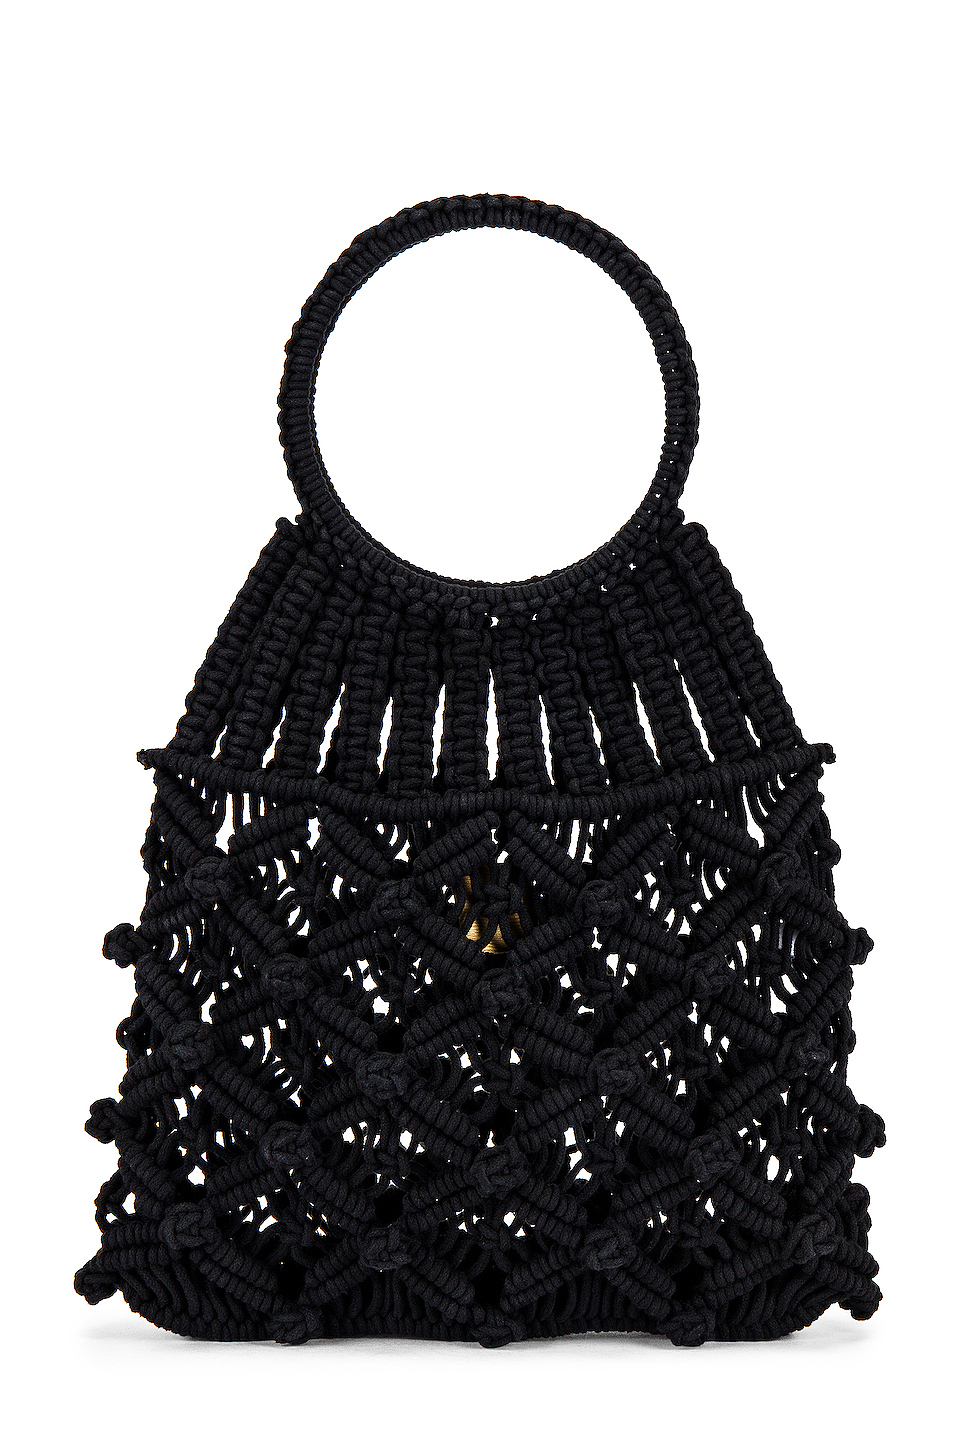 shop house of harlow 1960 bags